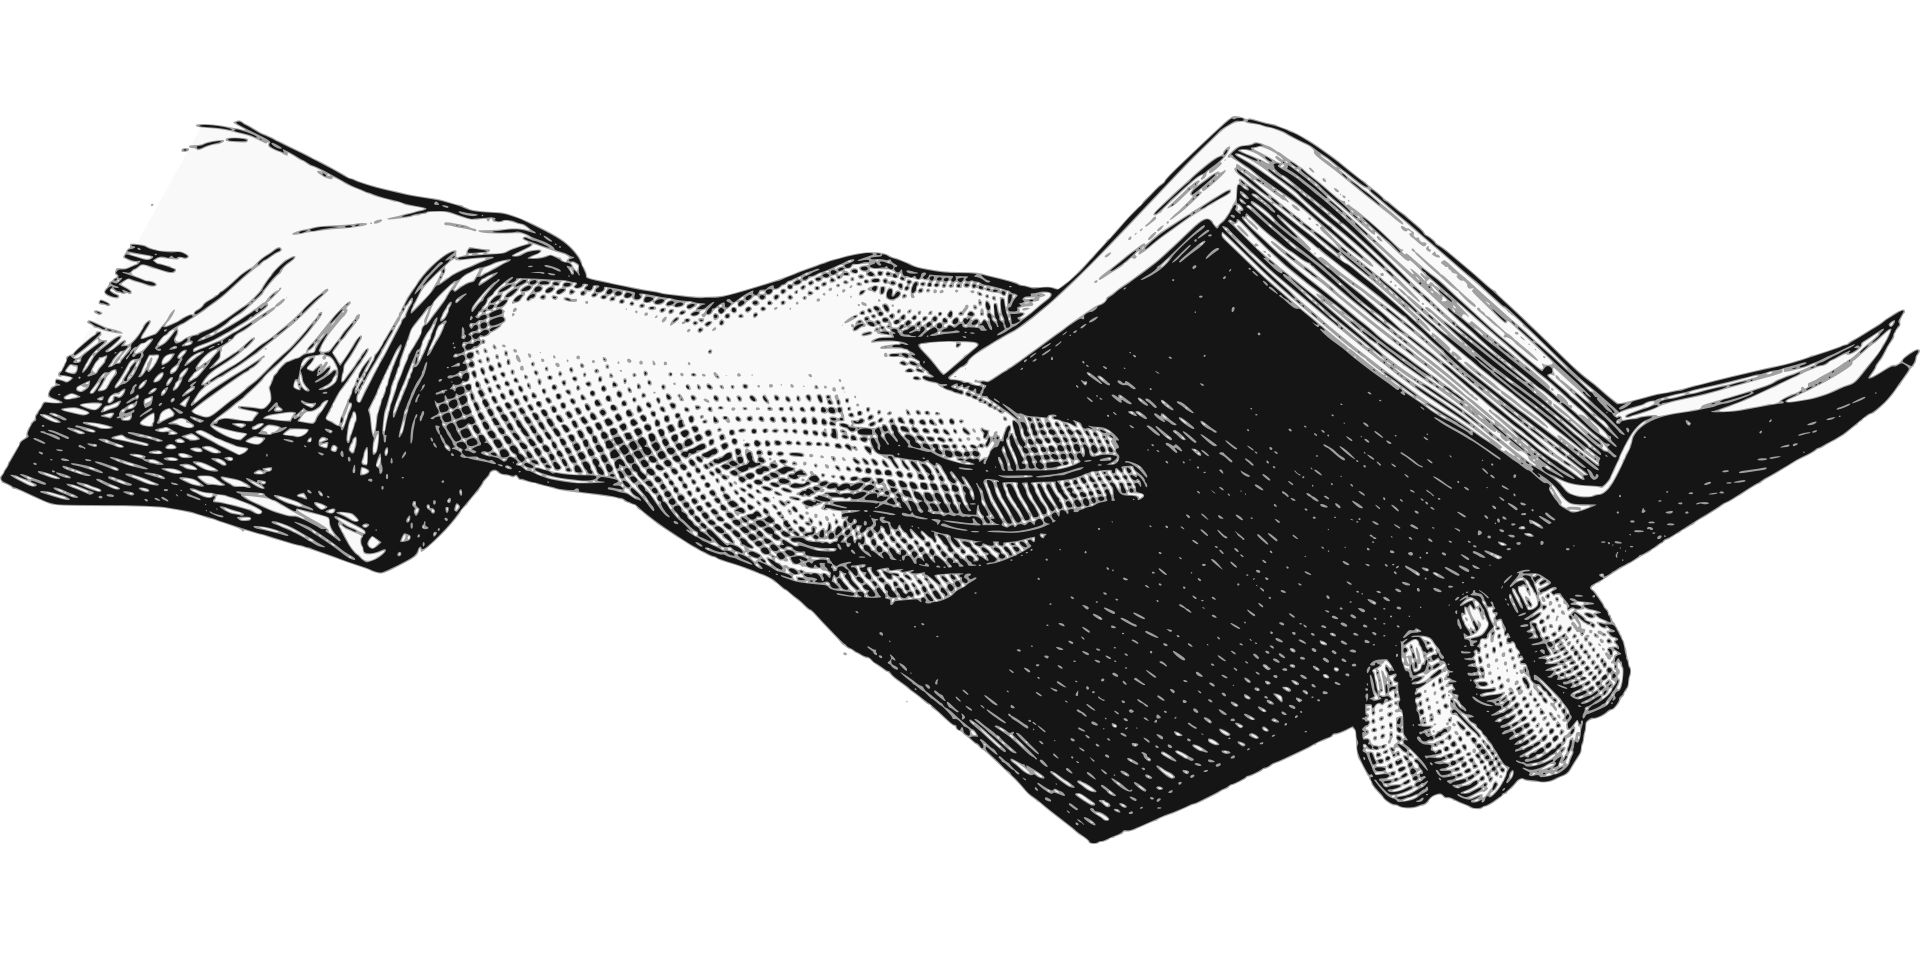 Drawing of hands holding a book